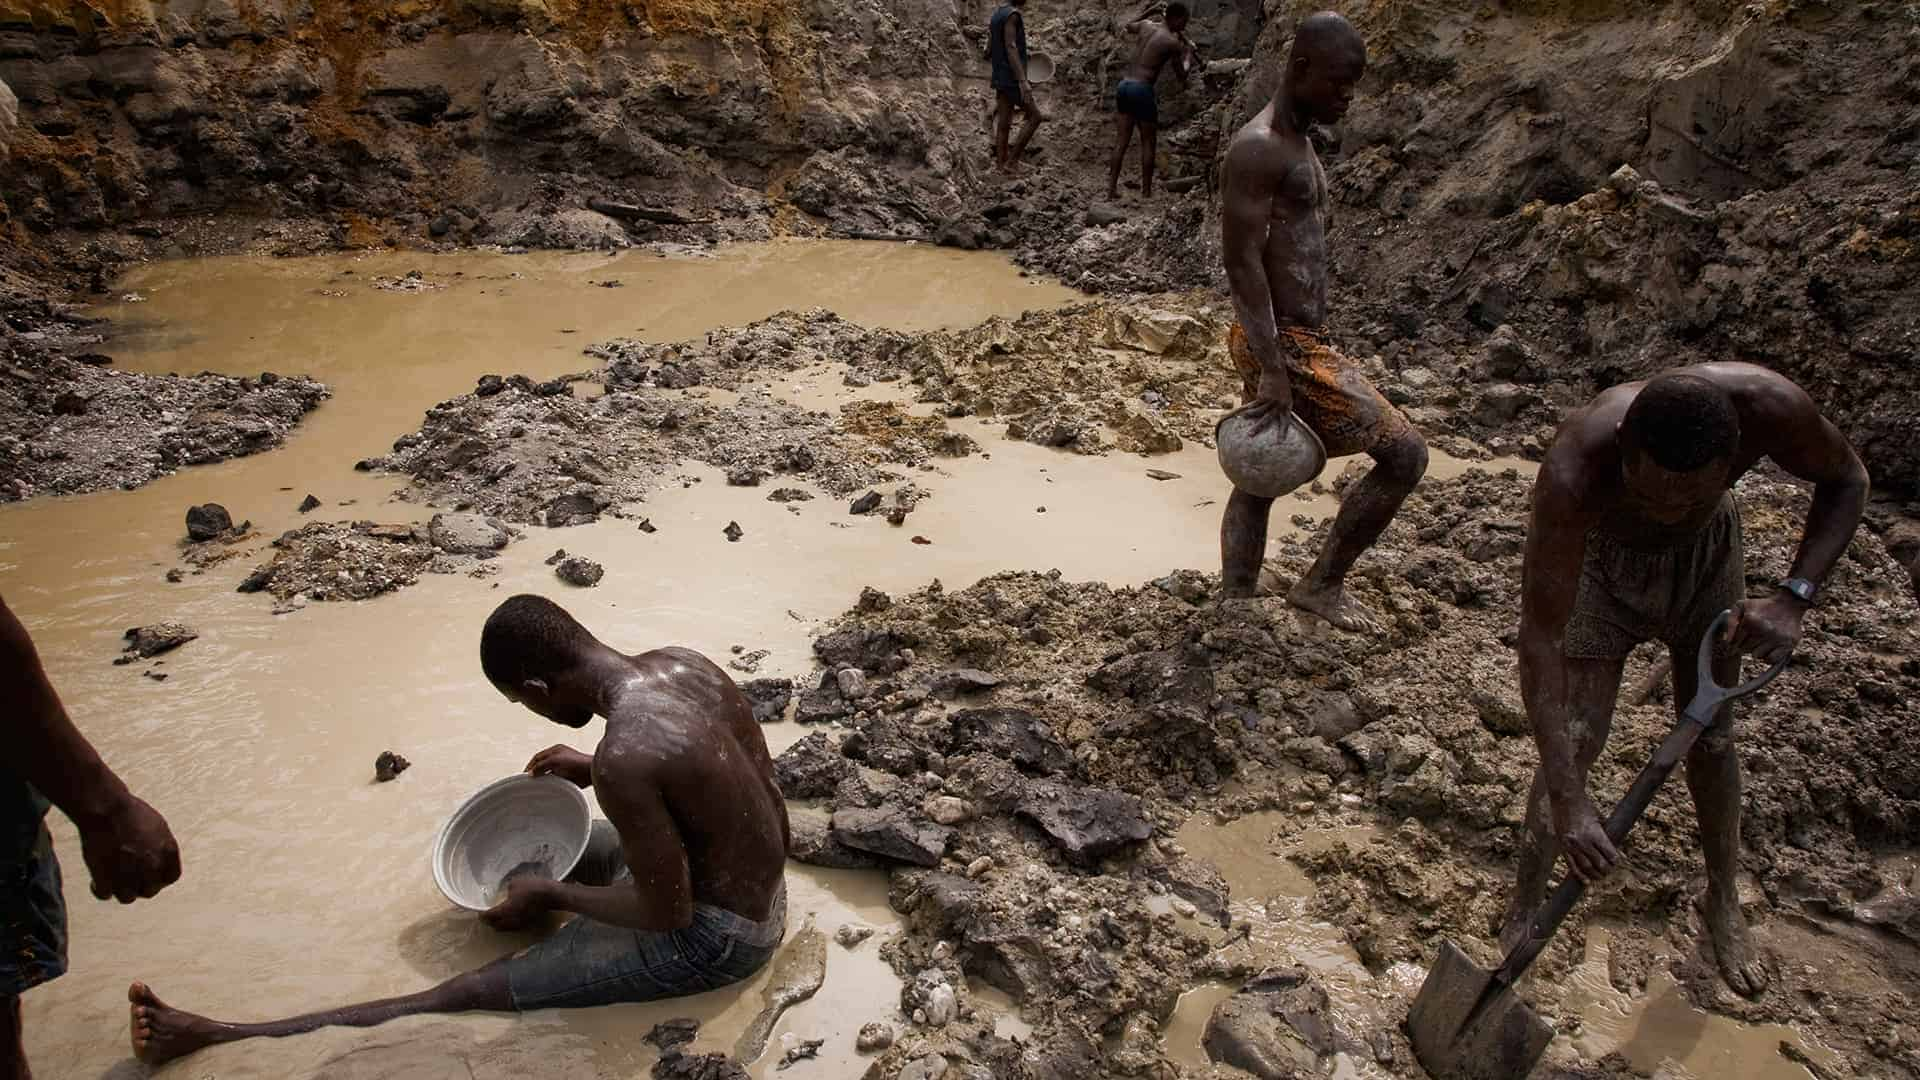 Conflict Minerals How Savagery In The Darkest Parts Of